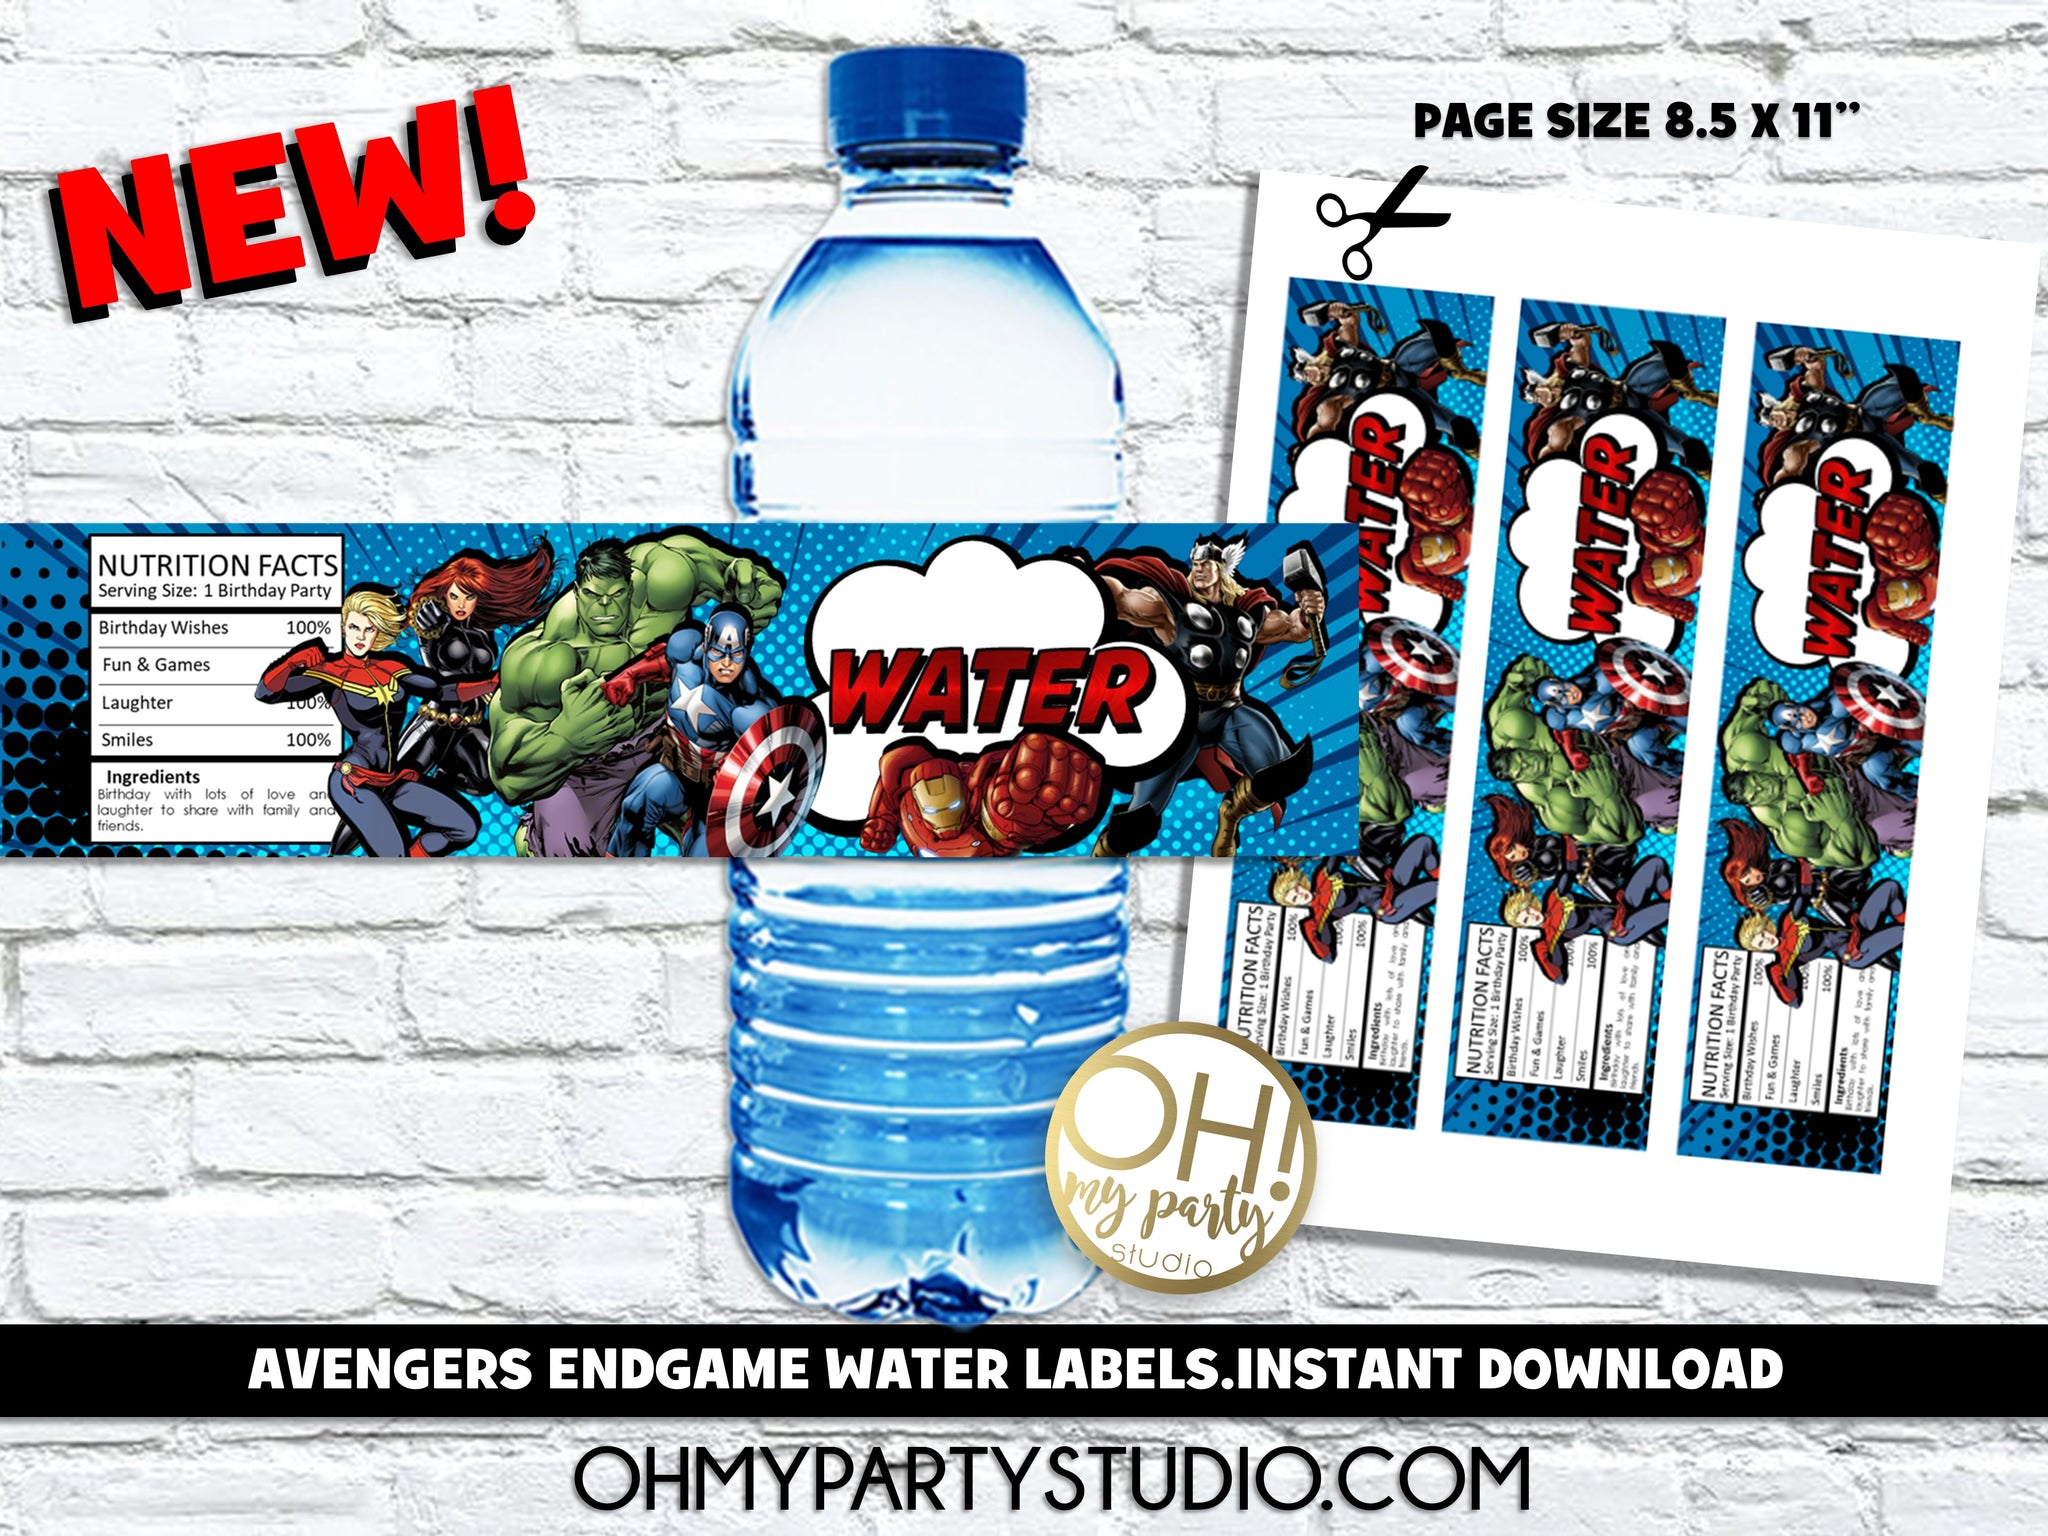 AVENGERS ENDGAME WATER LABELS, AVENGERS ENDGAME PARTY PRINTABLES, AVENGERS ENDGAME PARTY IDEAS, AVENGERS ENDGAME PARTY THEME, AVENGERS ENDGAME BIRTHDAY, AVENGERS ENDGAME PARTY, AVENGERS ENDGAME PARTY SUPPLIES, AVENGERS ENDGAME PRINTABLES,AVENGERS WATER BOTTLE, AVENGERS WATER LABELS,AVENGERS PARTY, AVENGERS BIRTHDAY